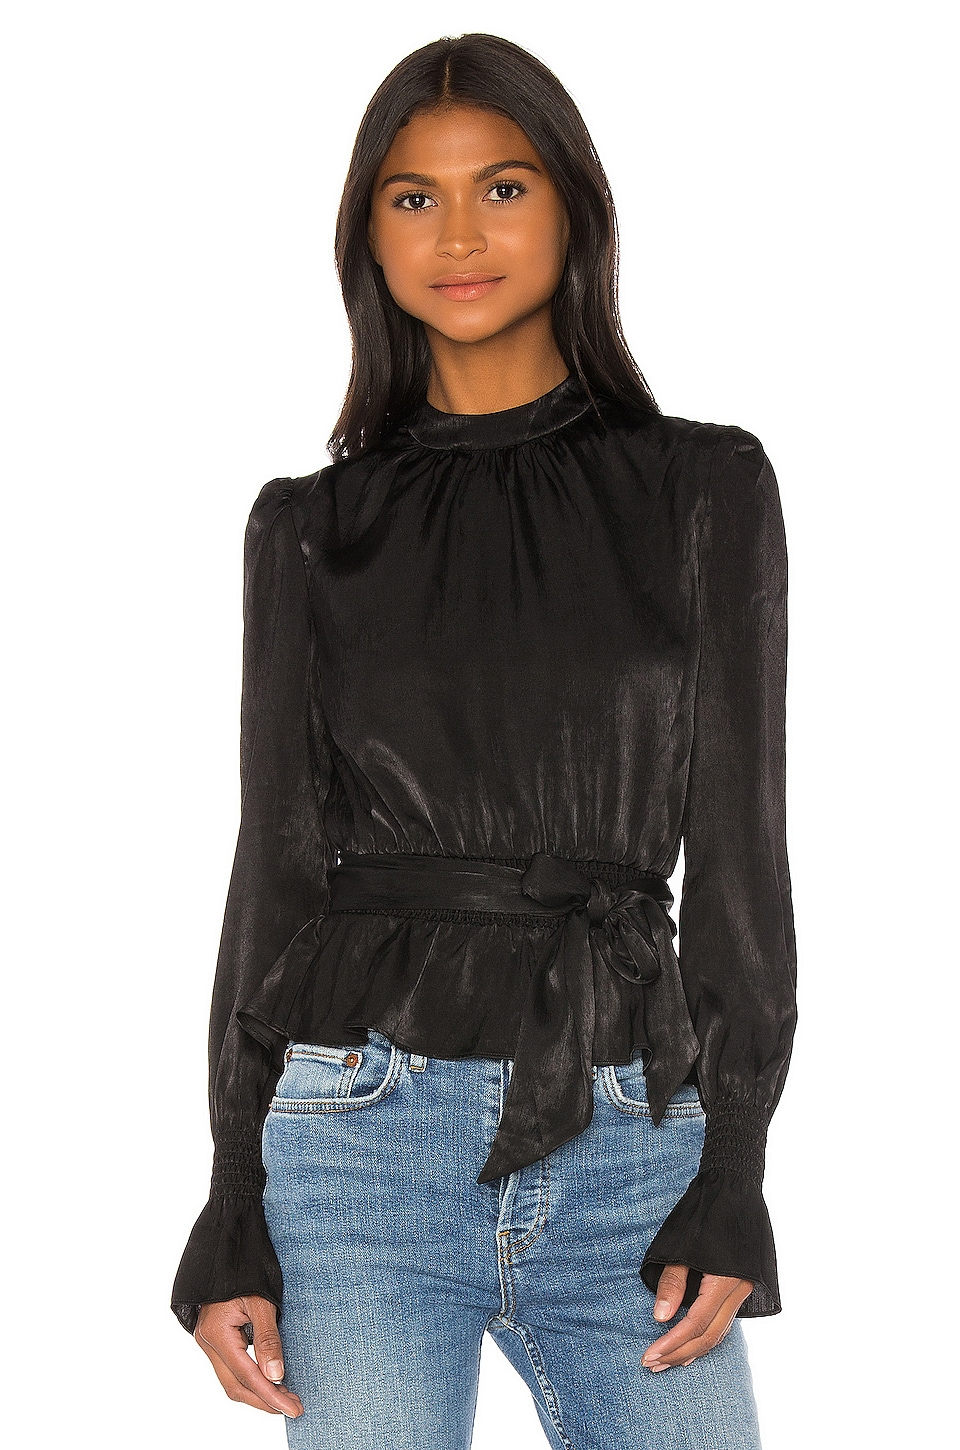 Tularosa Rein Top in Black